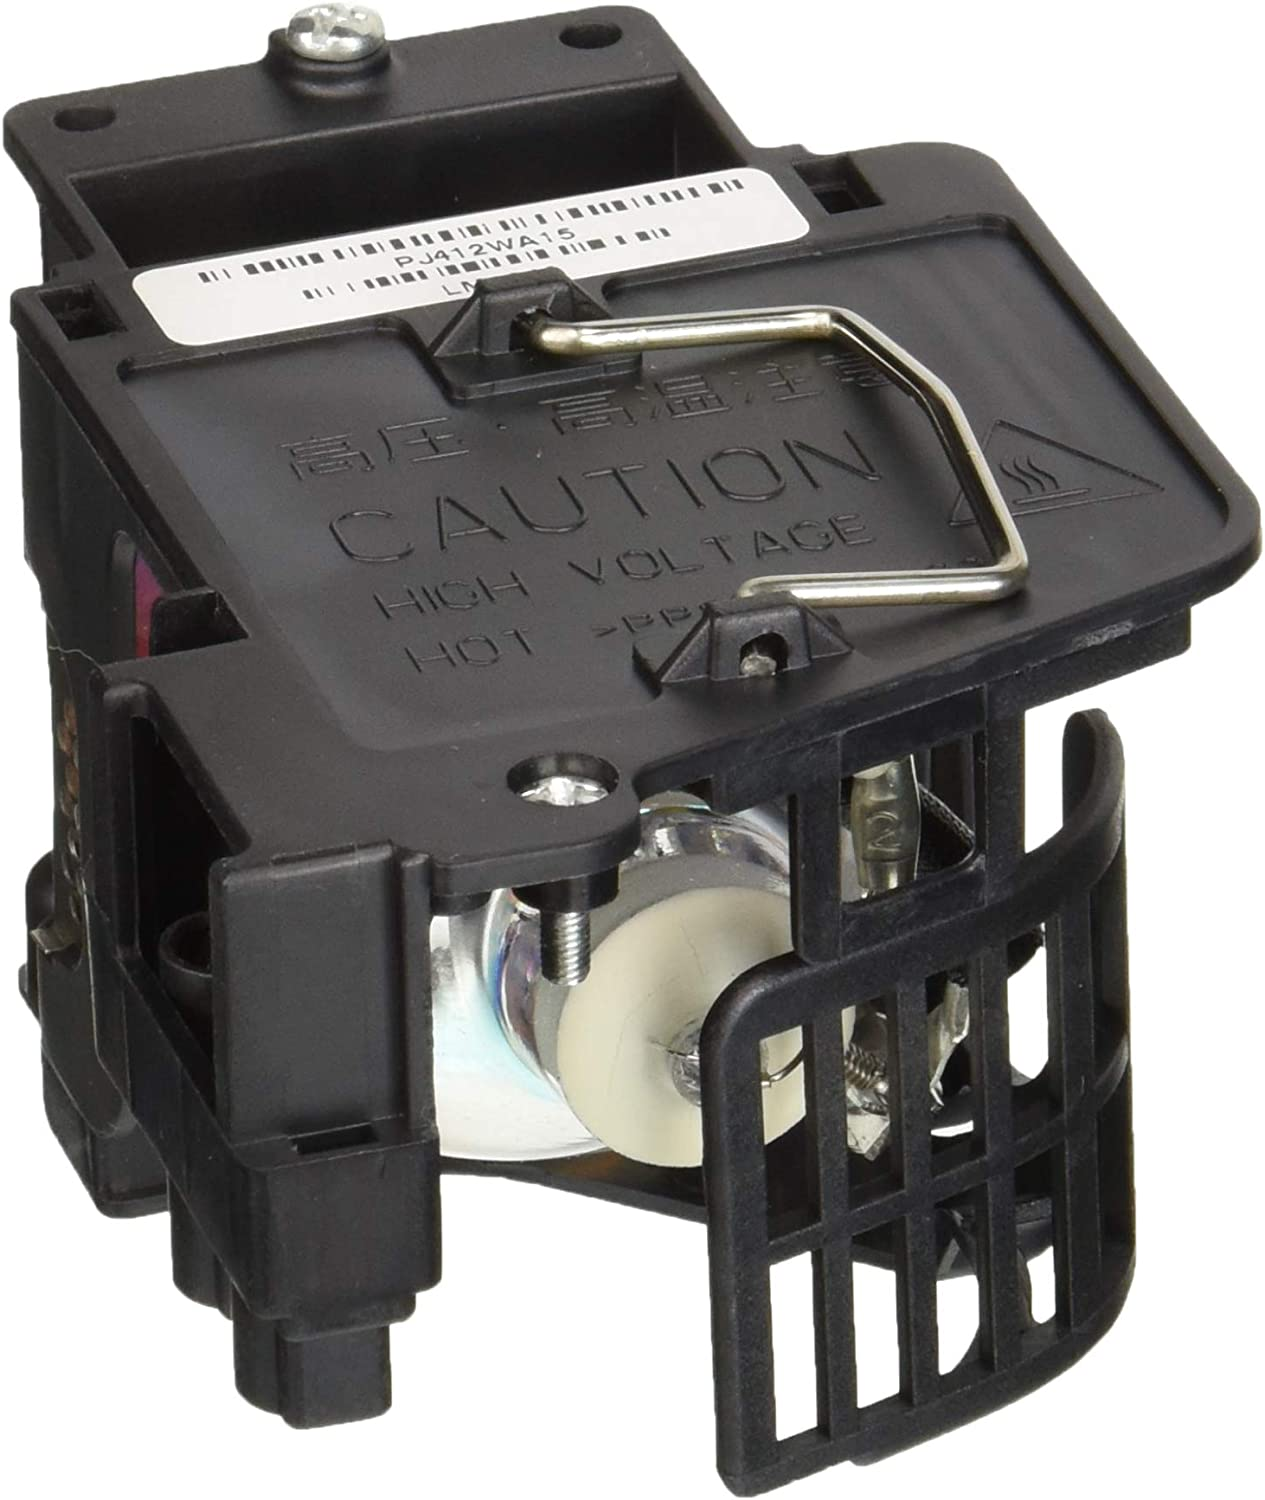 Battery Technology Replacement Lamp for Sanyo PRM10 PRM20 Promethean Active Board